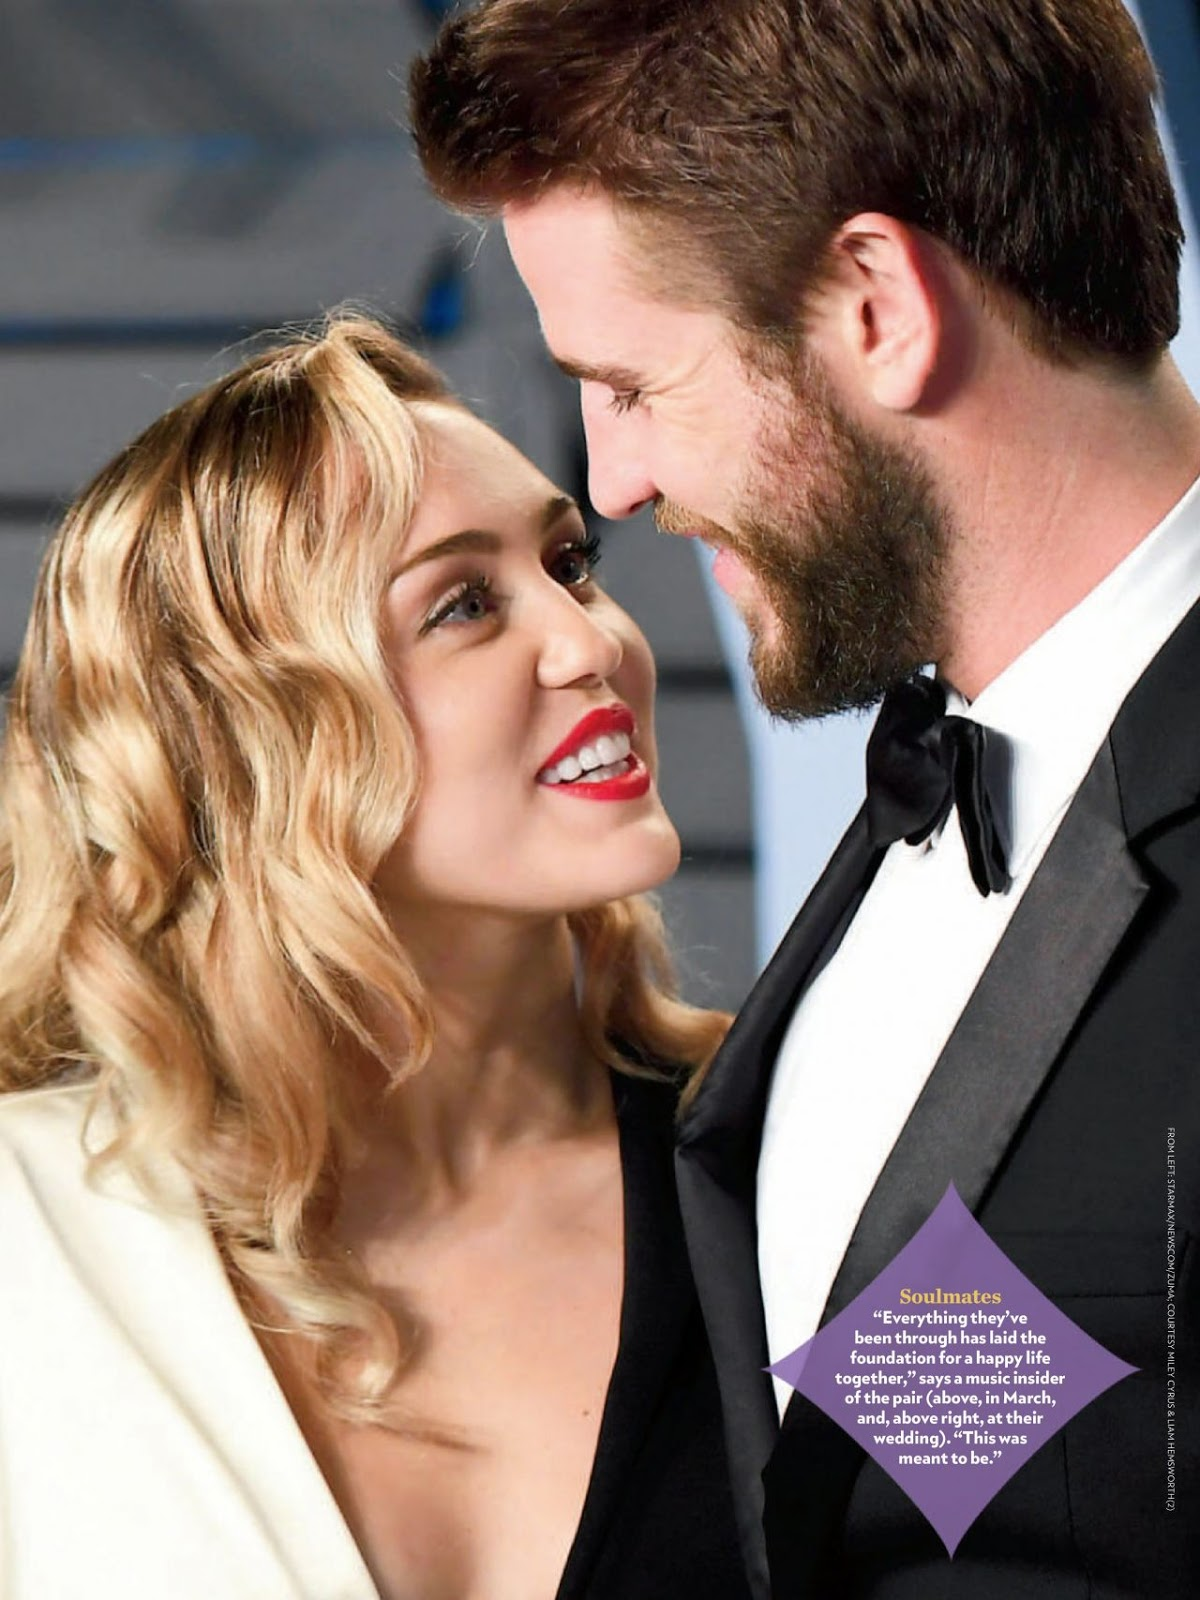 Miley Cyrus and Liam Hemsworth call it quits after less than one year of marriage